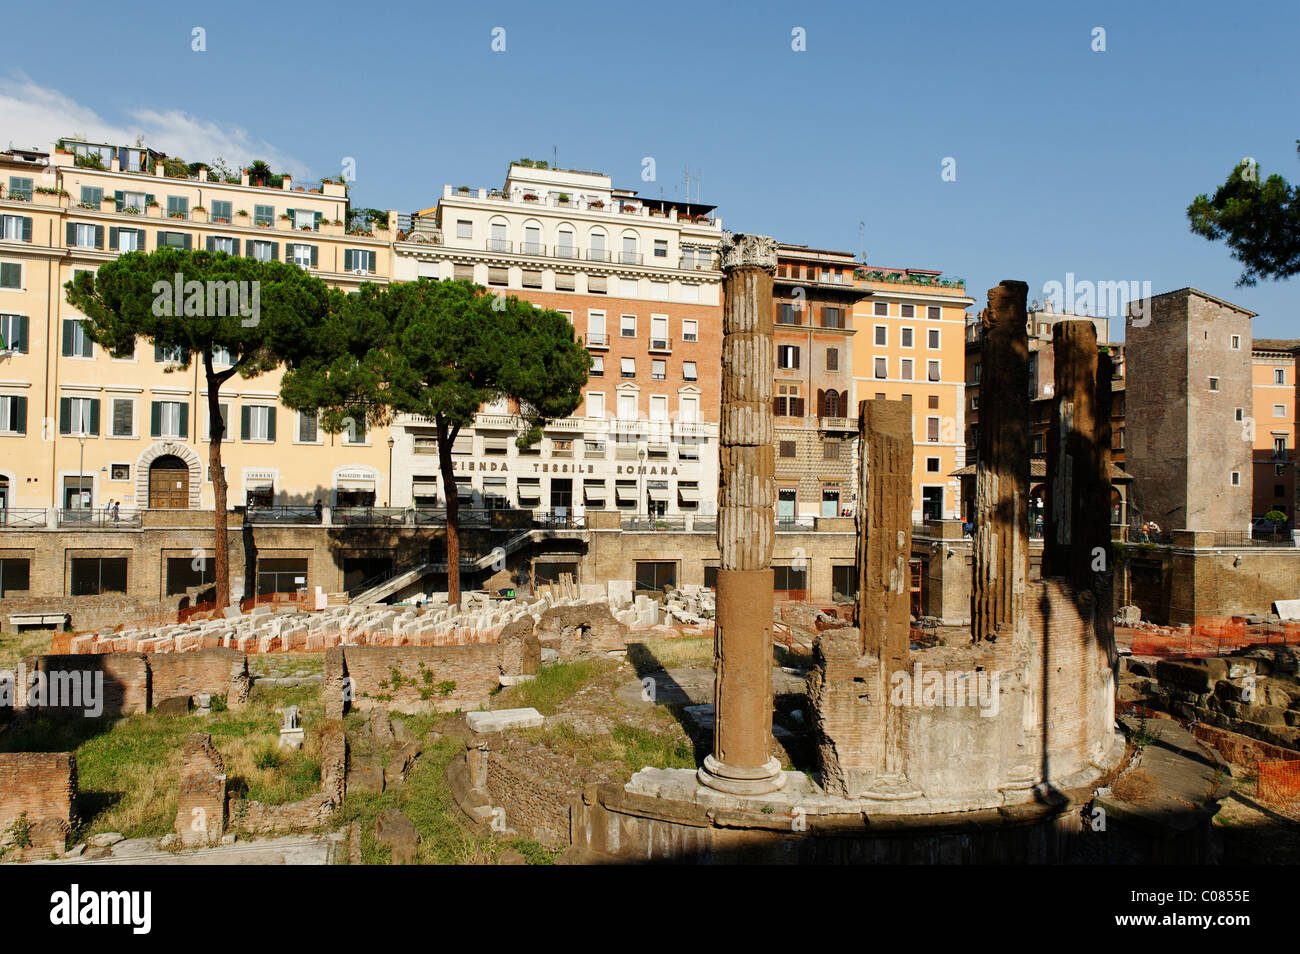 Area Sacra di Largo Argentina, Pigna, Rome, Italy, Europe Stock Photo